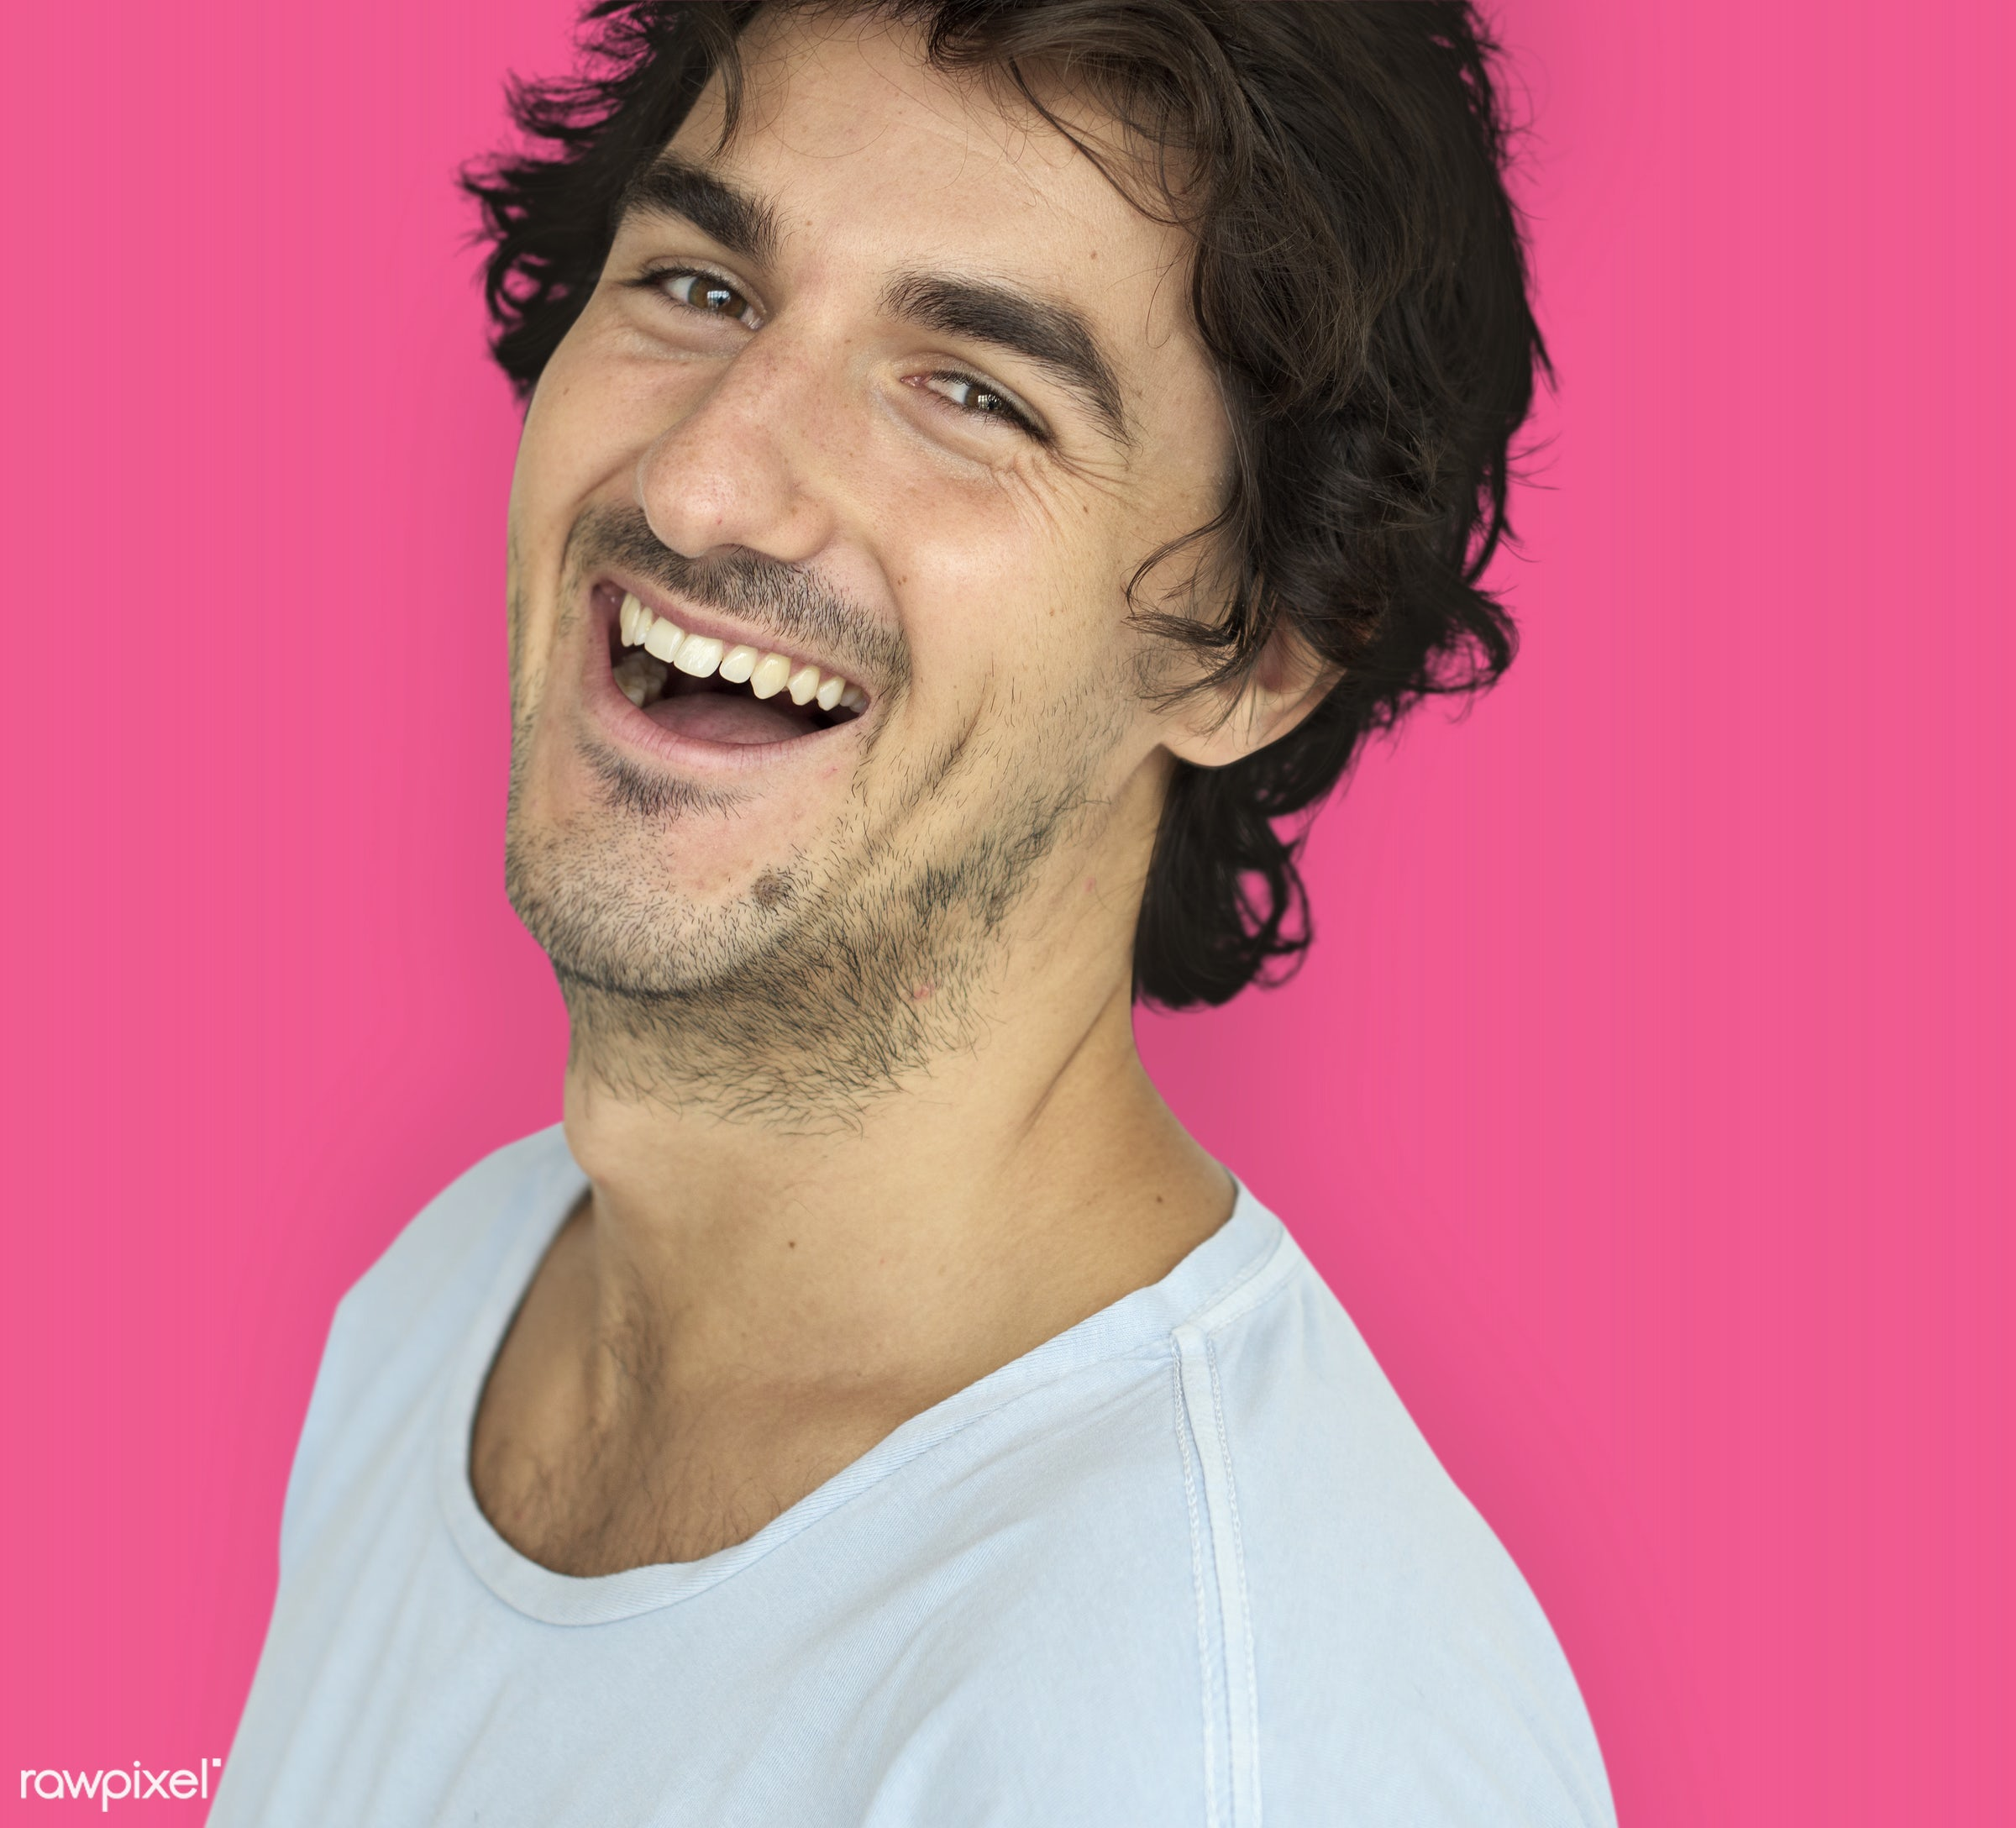 studio, expression, person, people, caucasian, lifestyle, pink, smile, positive, cheerful, isolated, happiness, posing,...